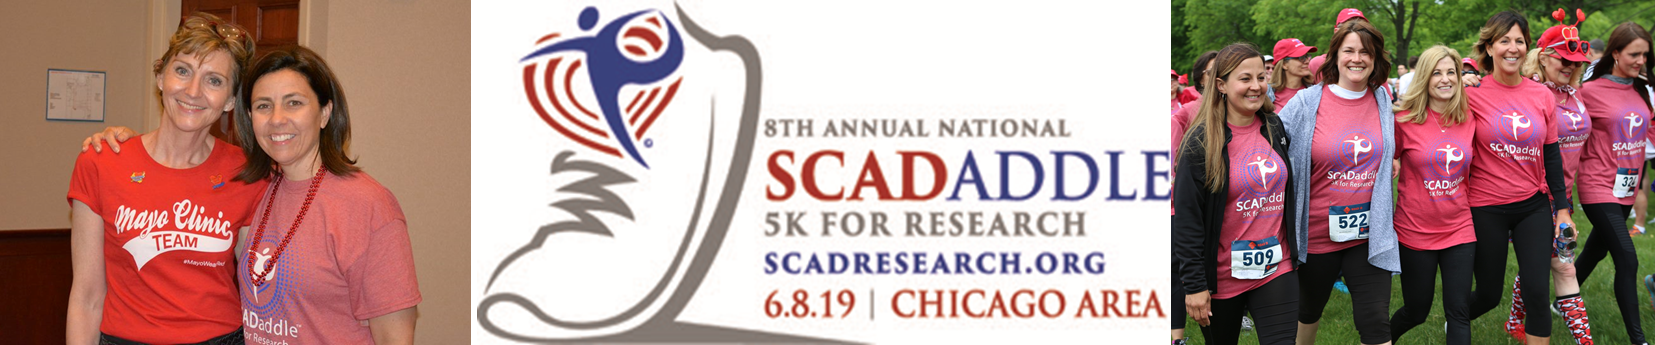 2019 National SCADaddle 5k